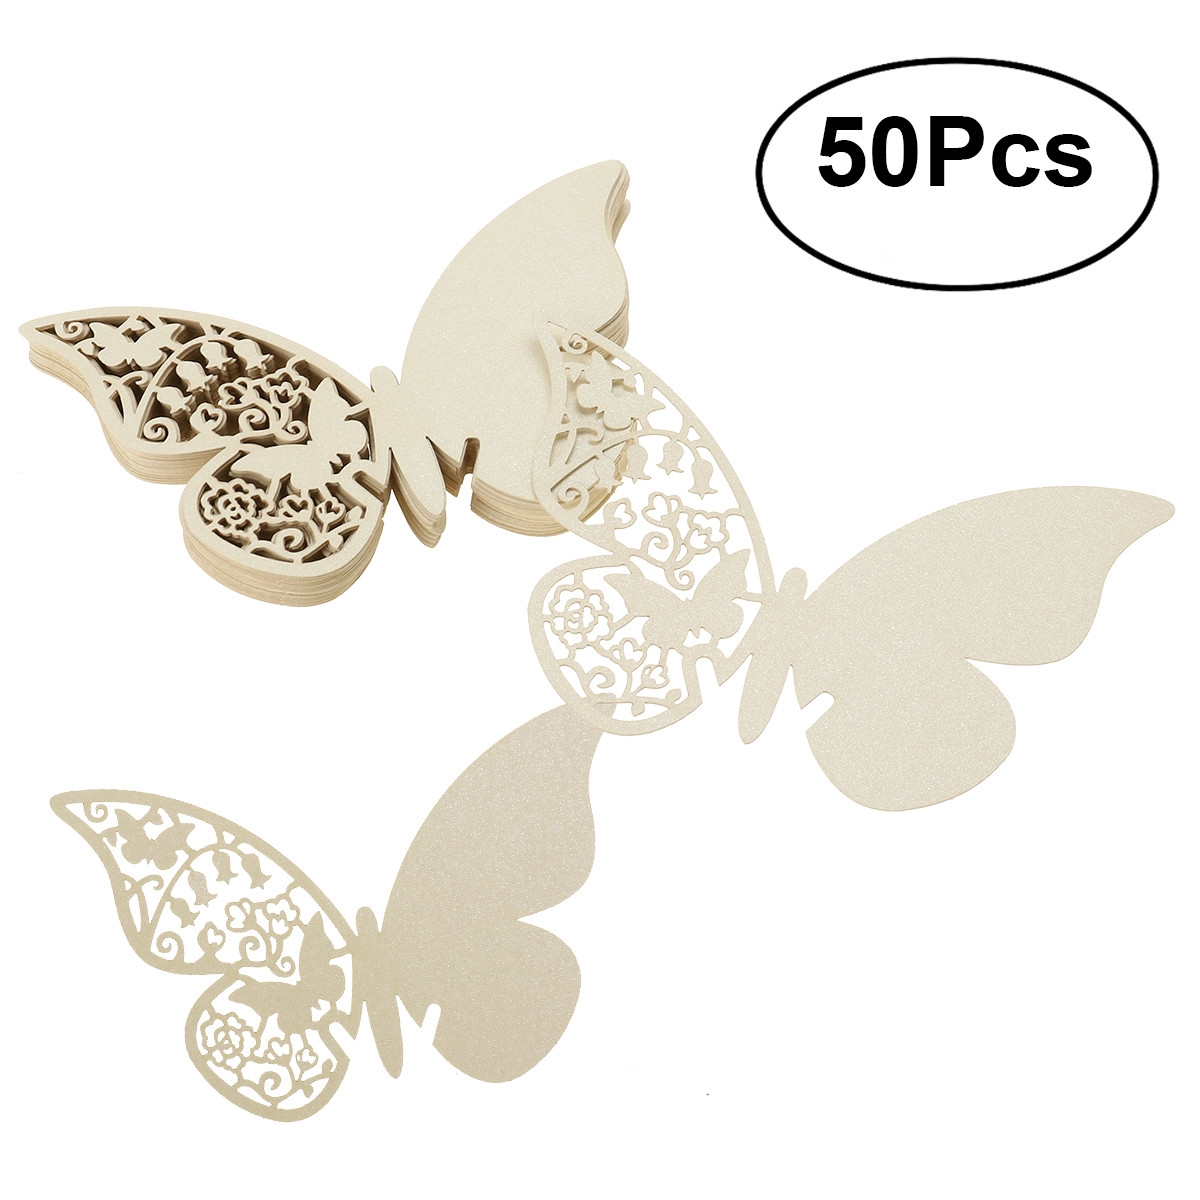 50pcs Butterfly Style Wedding Table Paper Place Card Escort Name Card Wine Glass Card for Wedding Party Decoration